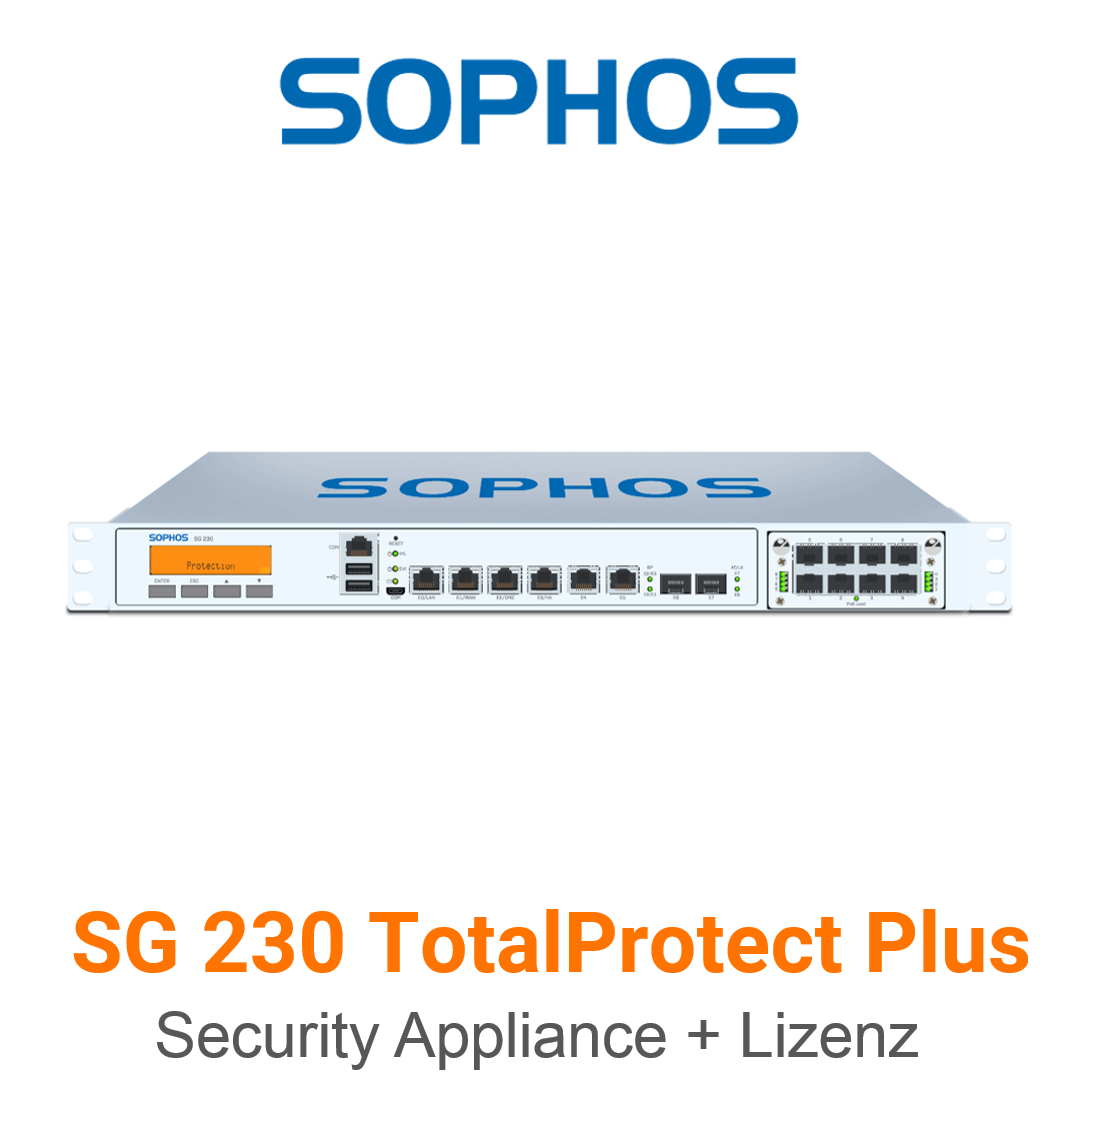 Sophos SG 230 TotalProtect Plus Bundle (Hardware + Lizenz)